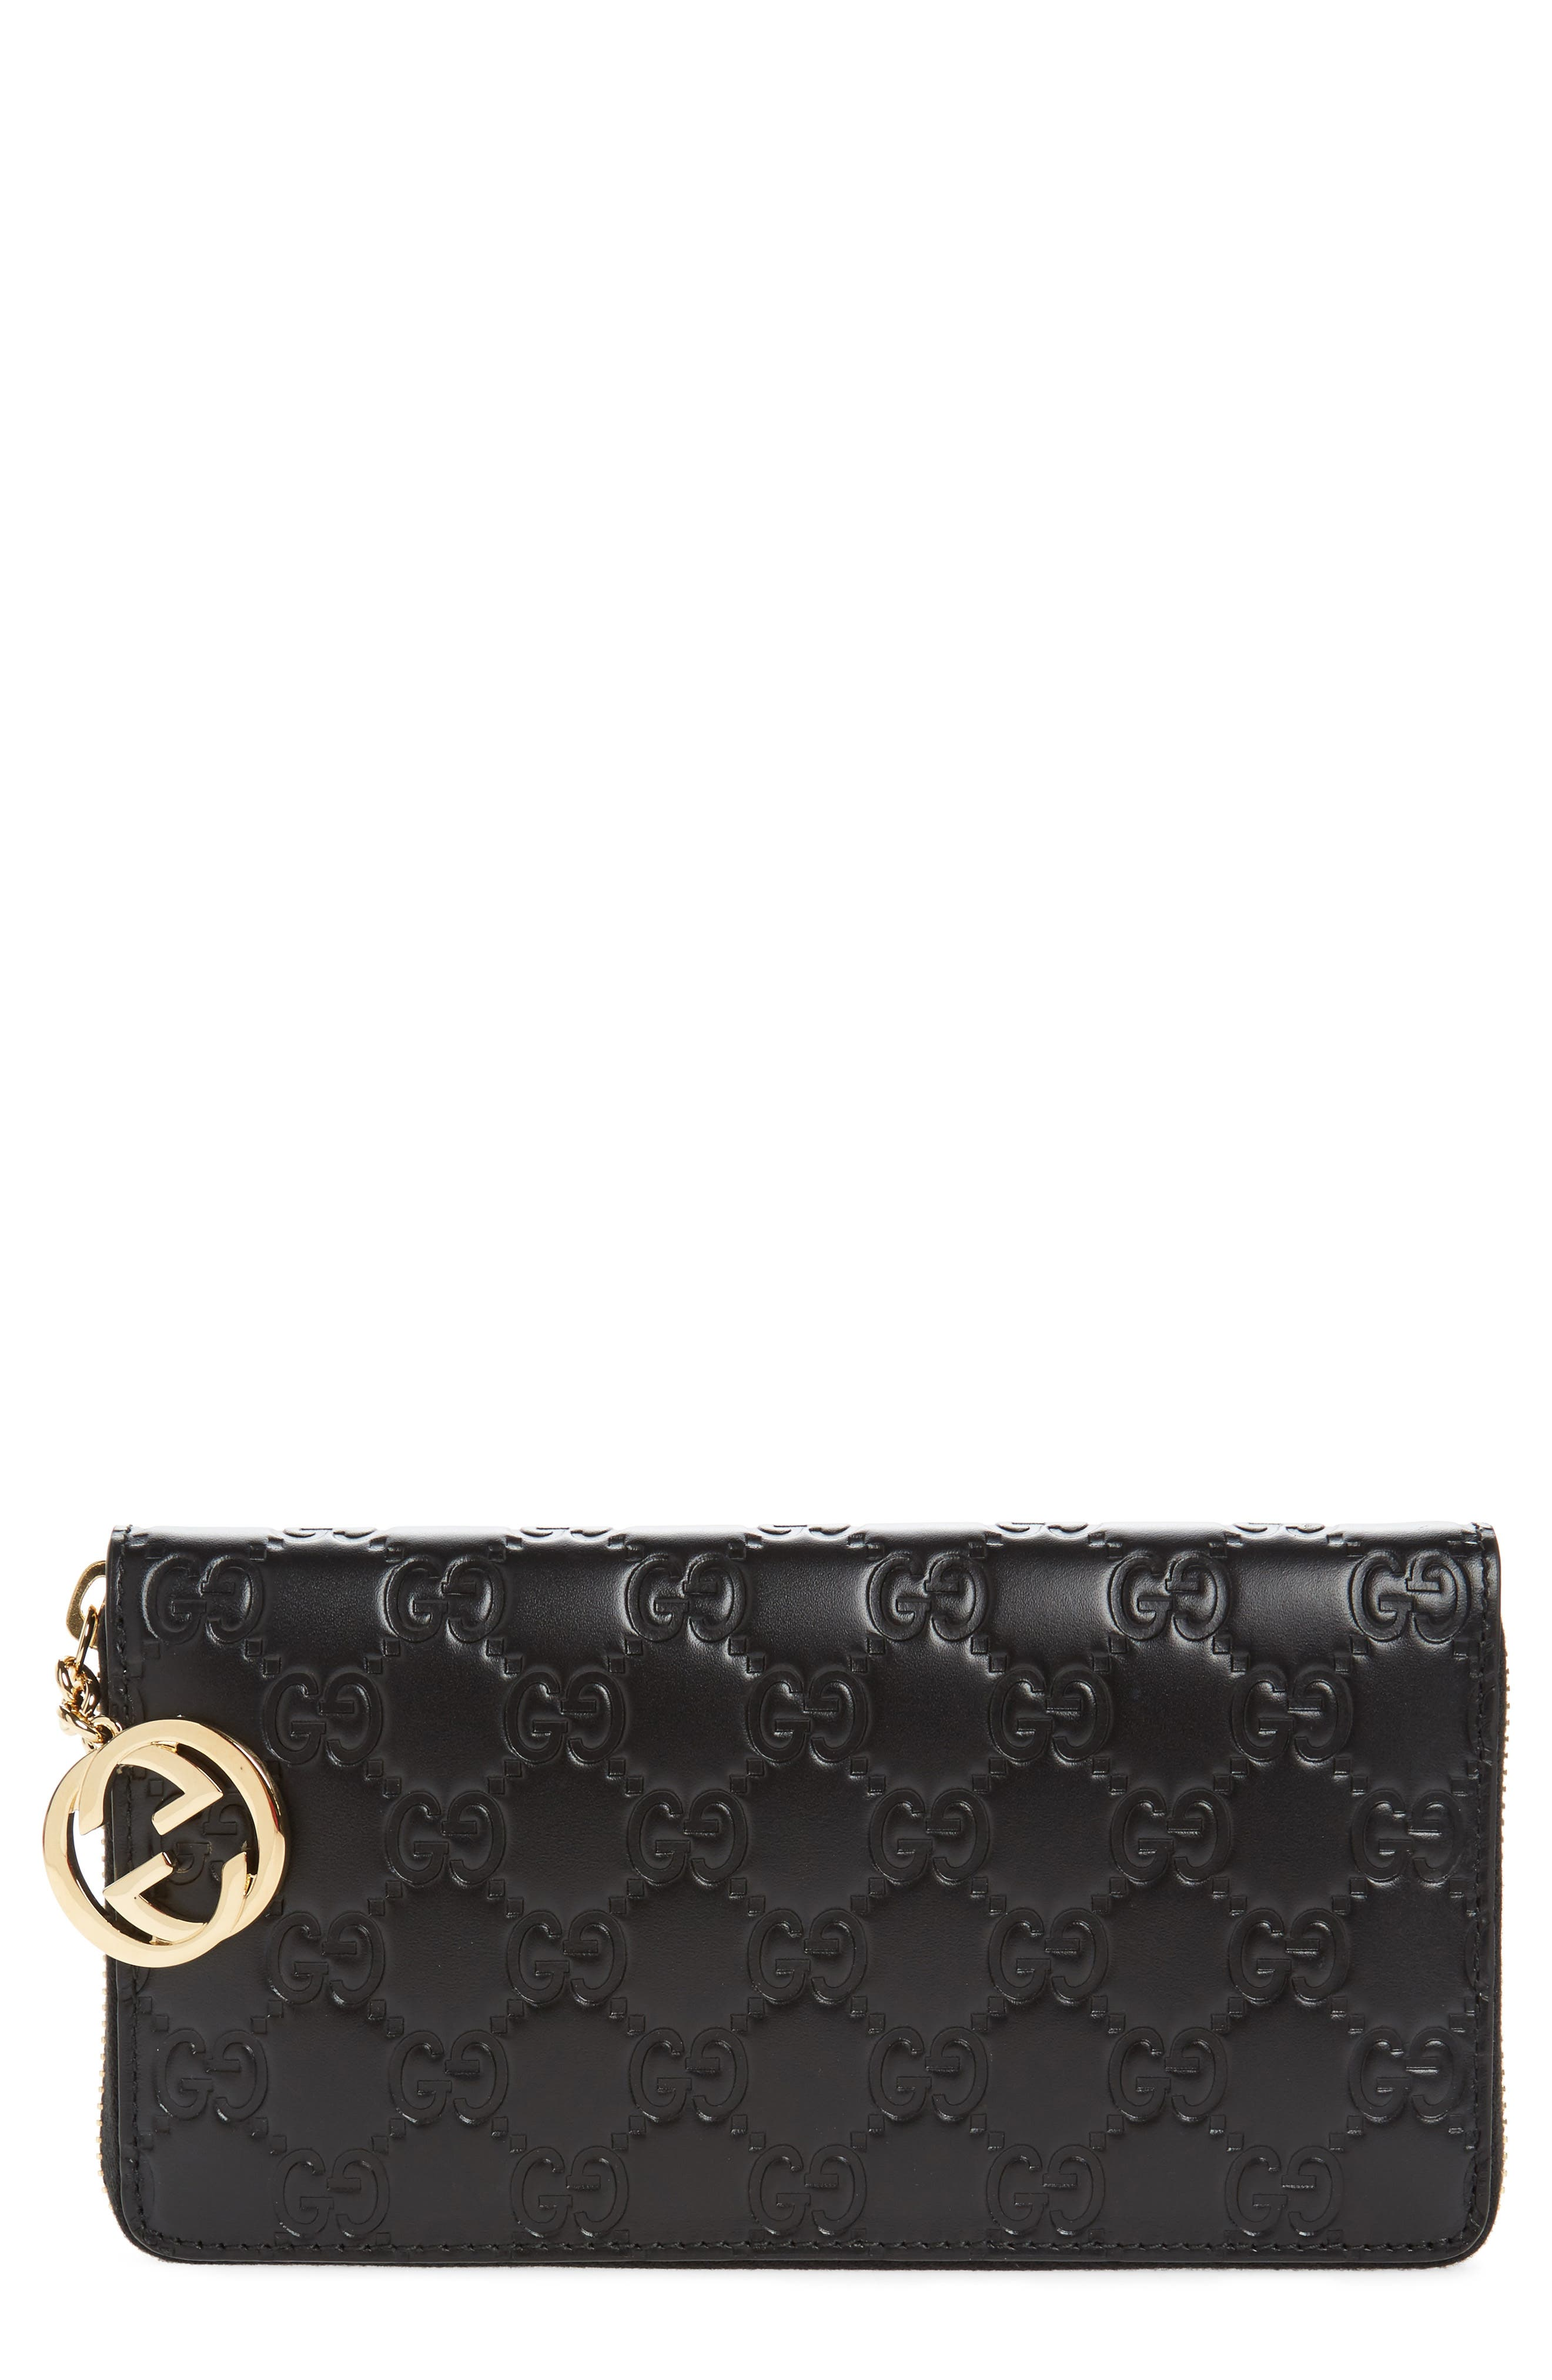 Main Image - Gucci Icon Leather Zip-Around Wallet